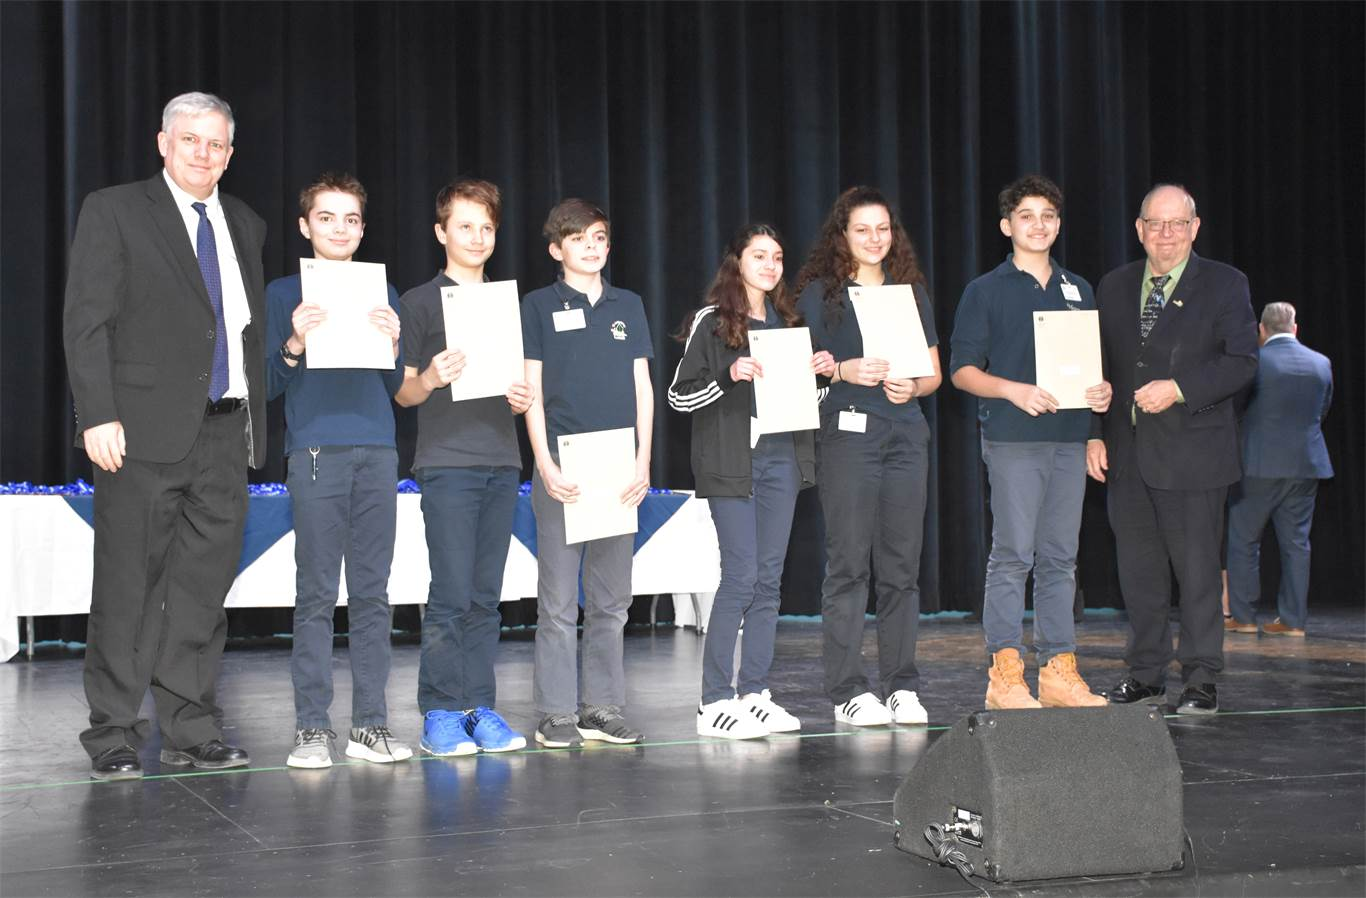 Kevin Hunt and Dan Bowman present BASEF awards to the top four exhibits in the fair. Pictured, from left to right, are Kevin Hunt, Tavian Augustus, Aiden Scheben, Steven Higgins, Daniella Iannuzzi, Alissa Guagliano, Anthony Saturnino, and Dan Bowman.